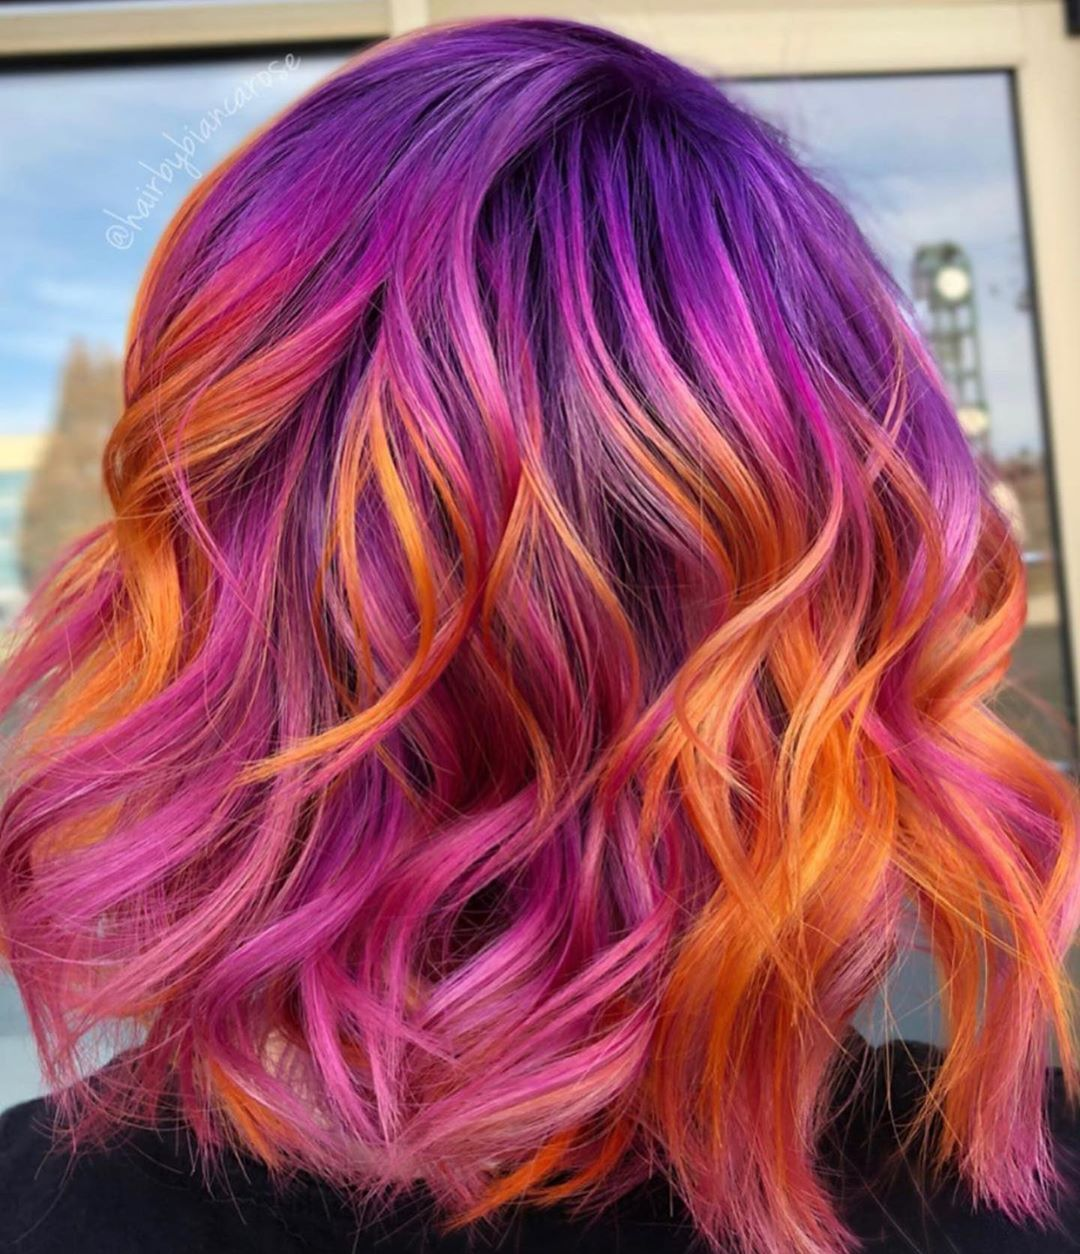 Living In Colour On Instagram Mix Your Colors To Create The Perfect Customized Look Hairbybiancaros Sunset Hair Pink Hair Highlights Orange Ombre Hair